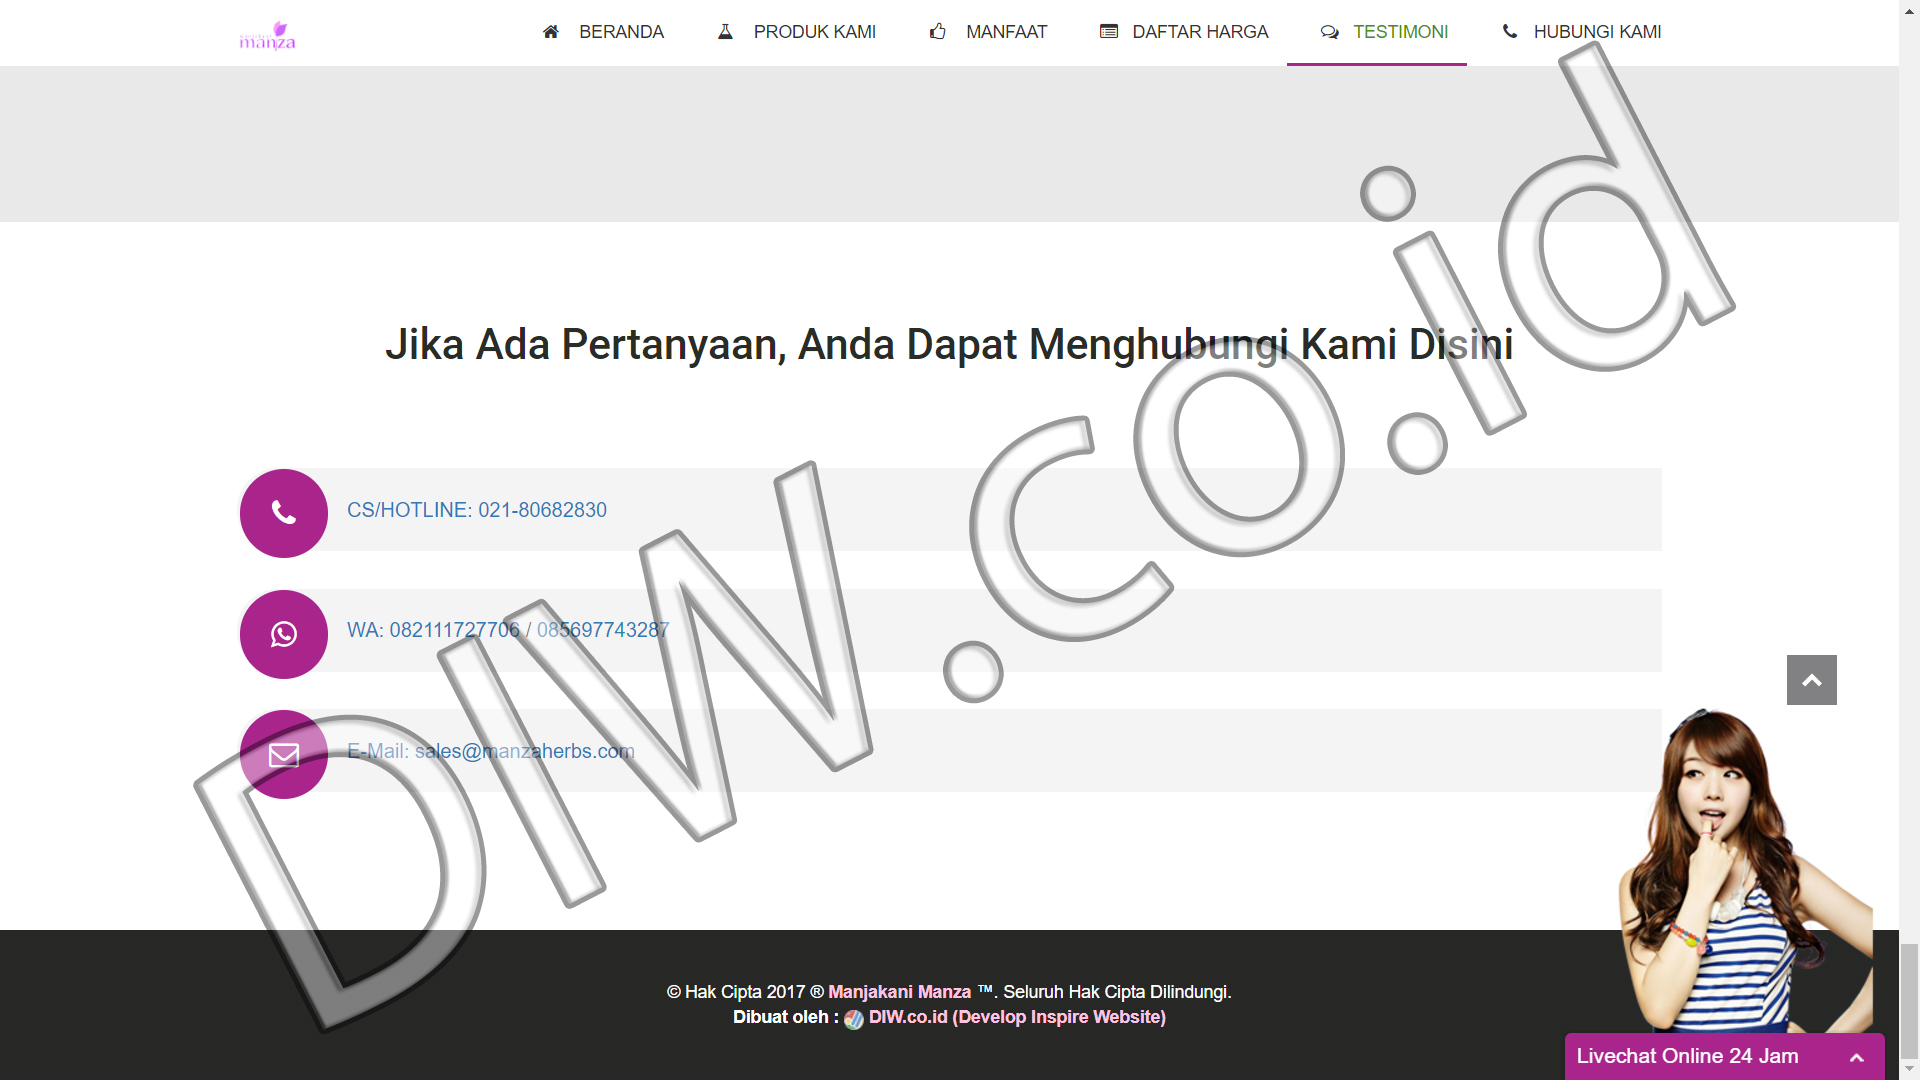 Portfolio 5 - Manjakani Manza - Andri Sunardi - Freelancer - Web Developer - CEO DIW.co.id